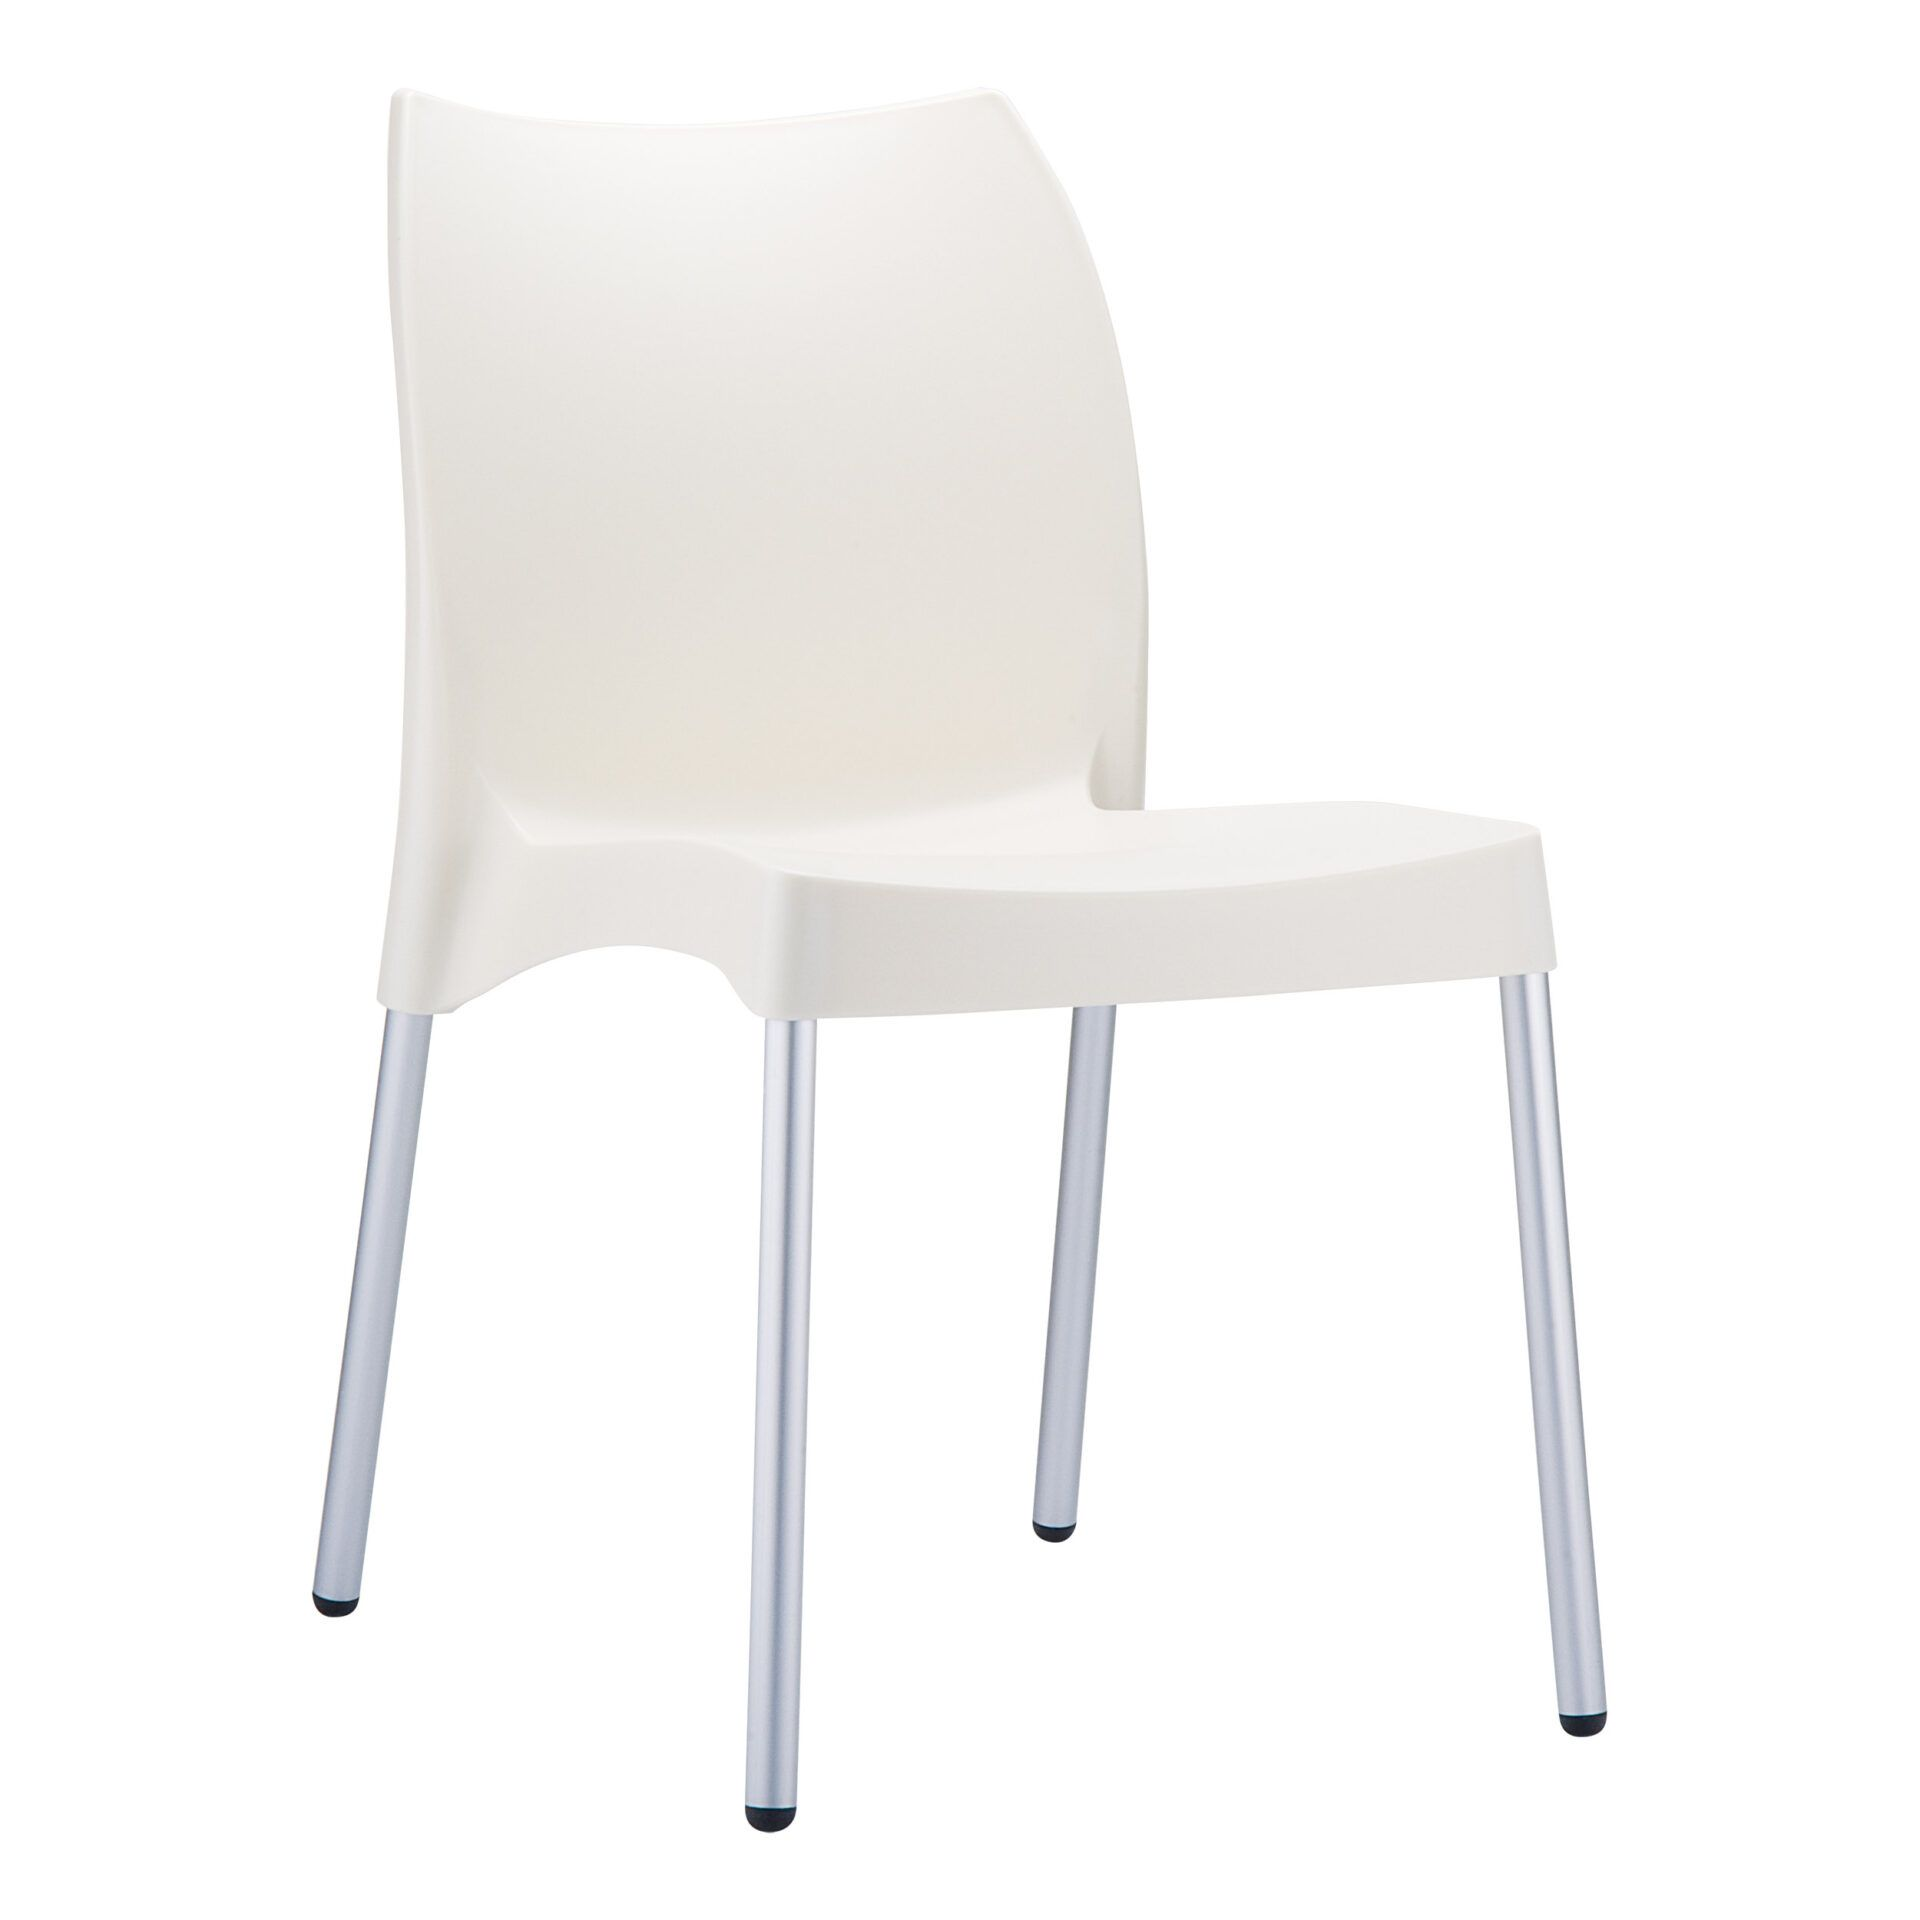 commercial outdoor hospitality seating vita chair beige front side